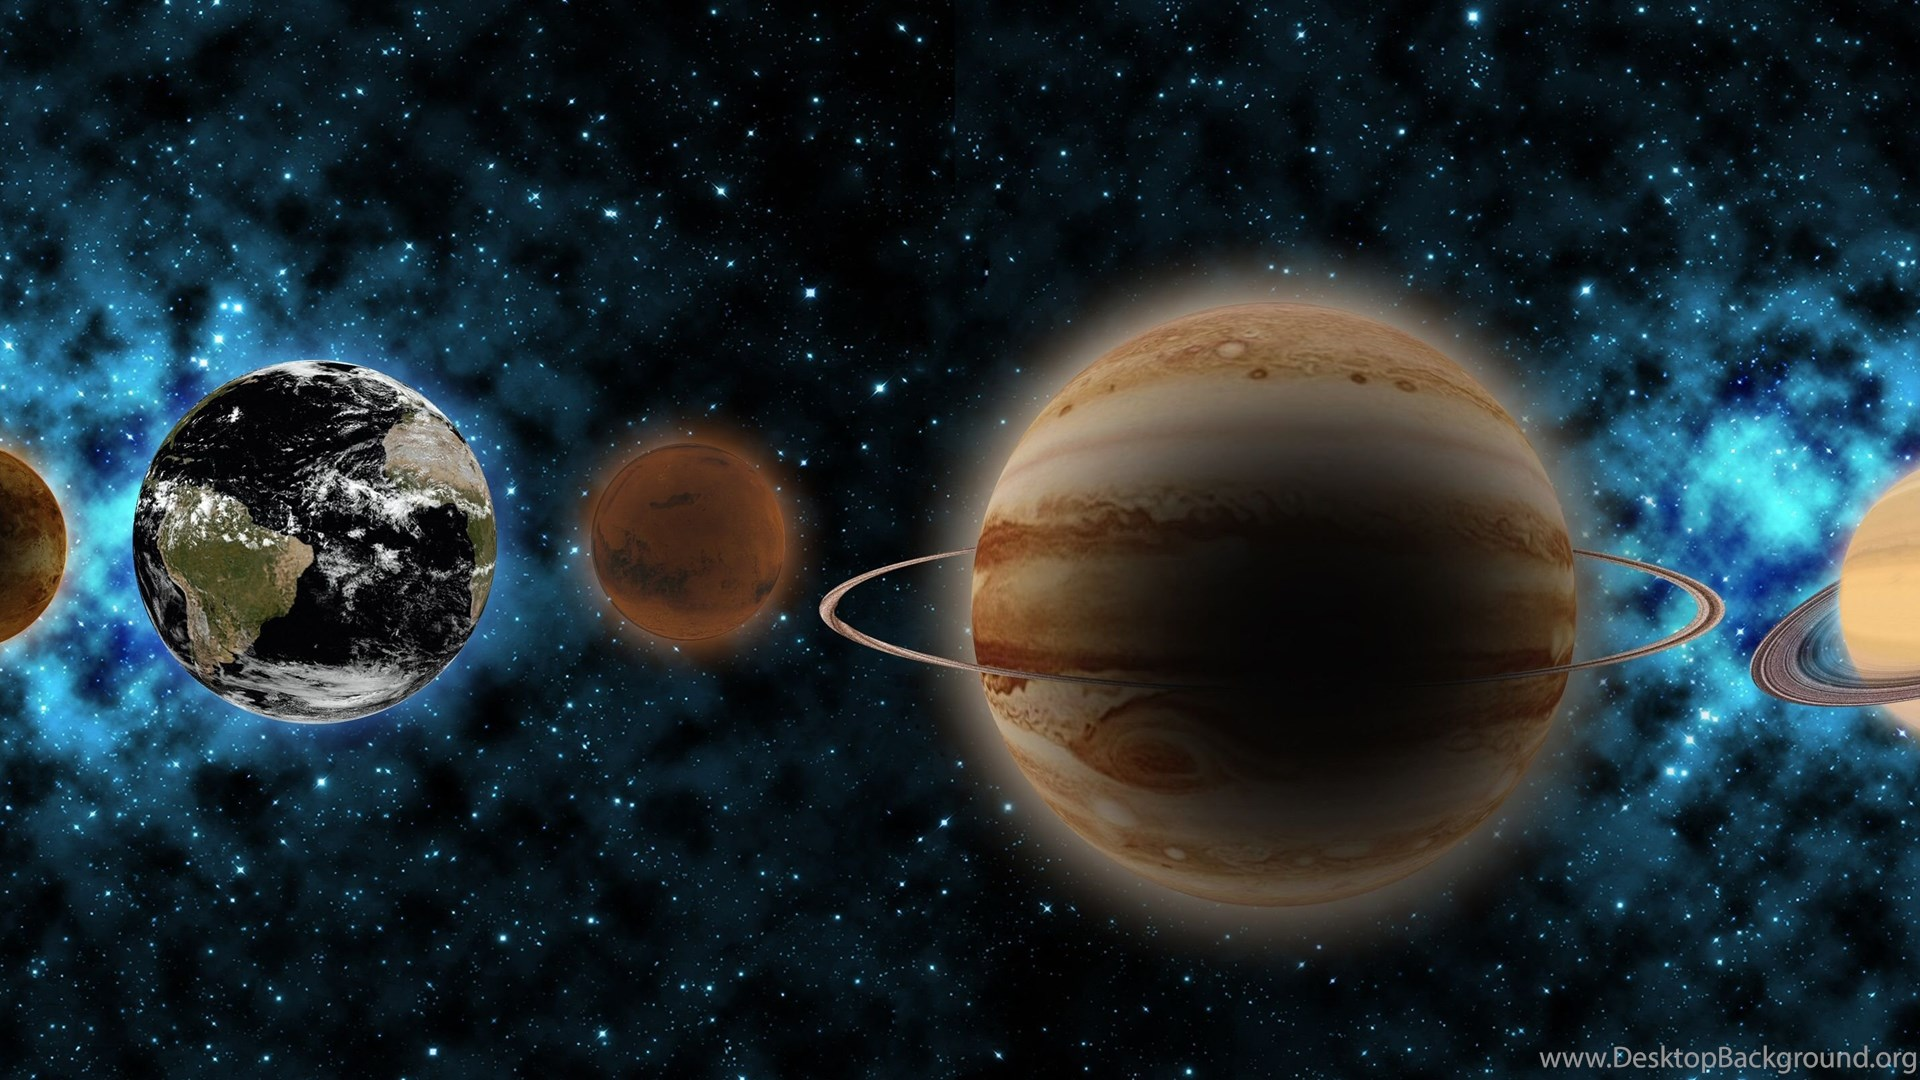 solar system hd images - photo #3